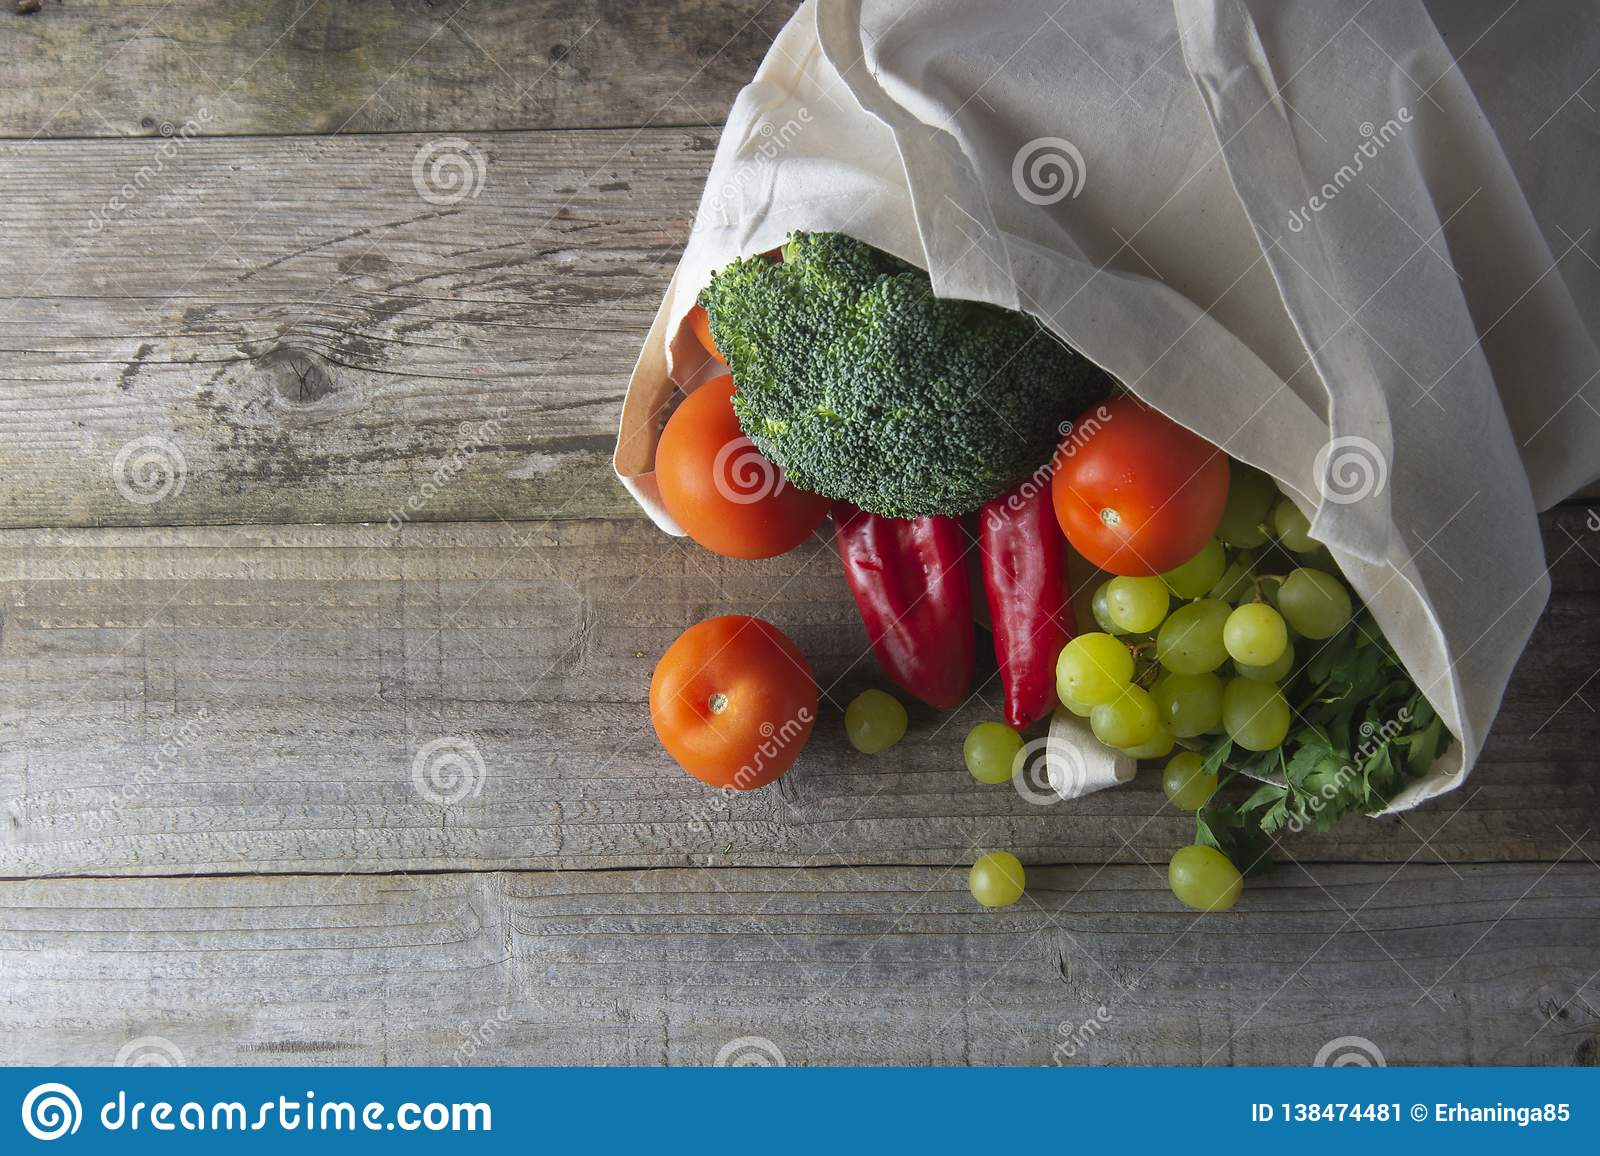 Groceries in eco bag. Eco natural bag with fruits and vegetables. Zero waste food shopping. Plastic free items. reuse, reduce,